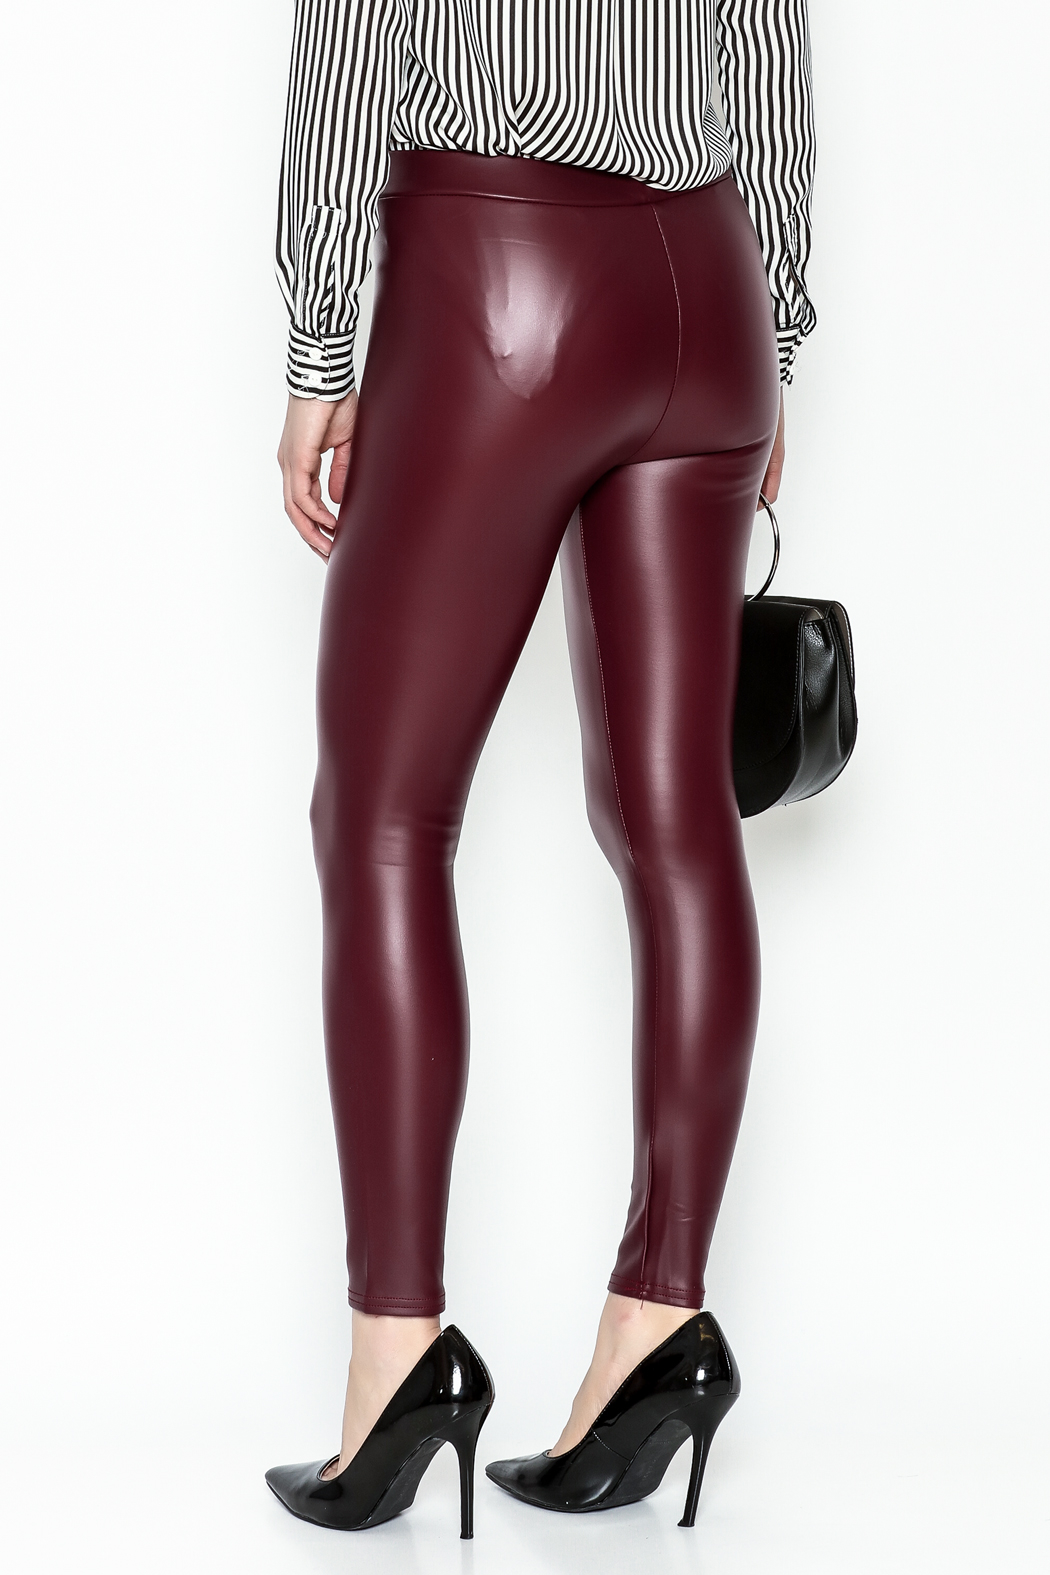 Polly & Esther Pleather Leggings - Back Cropped Image